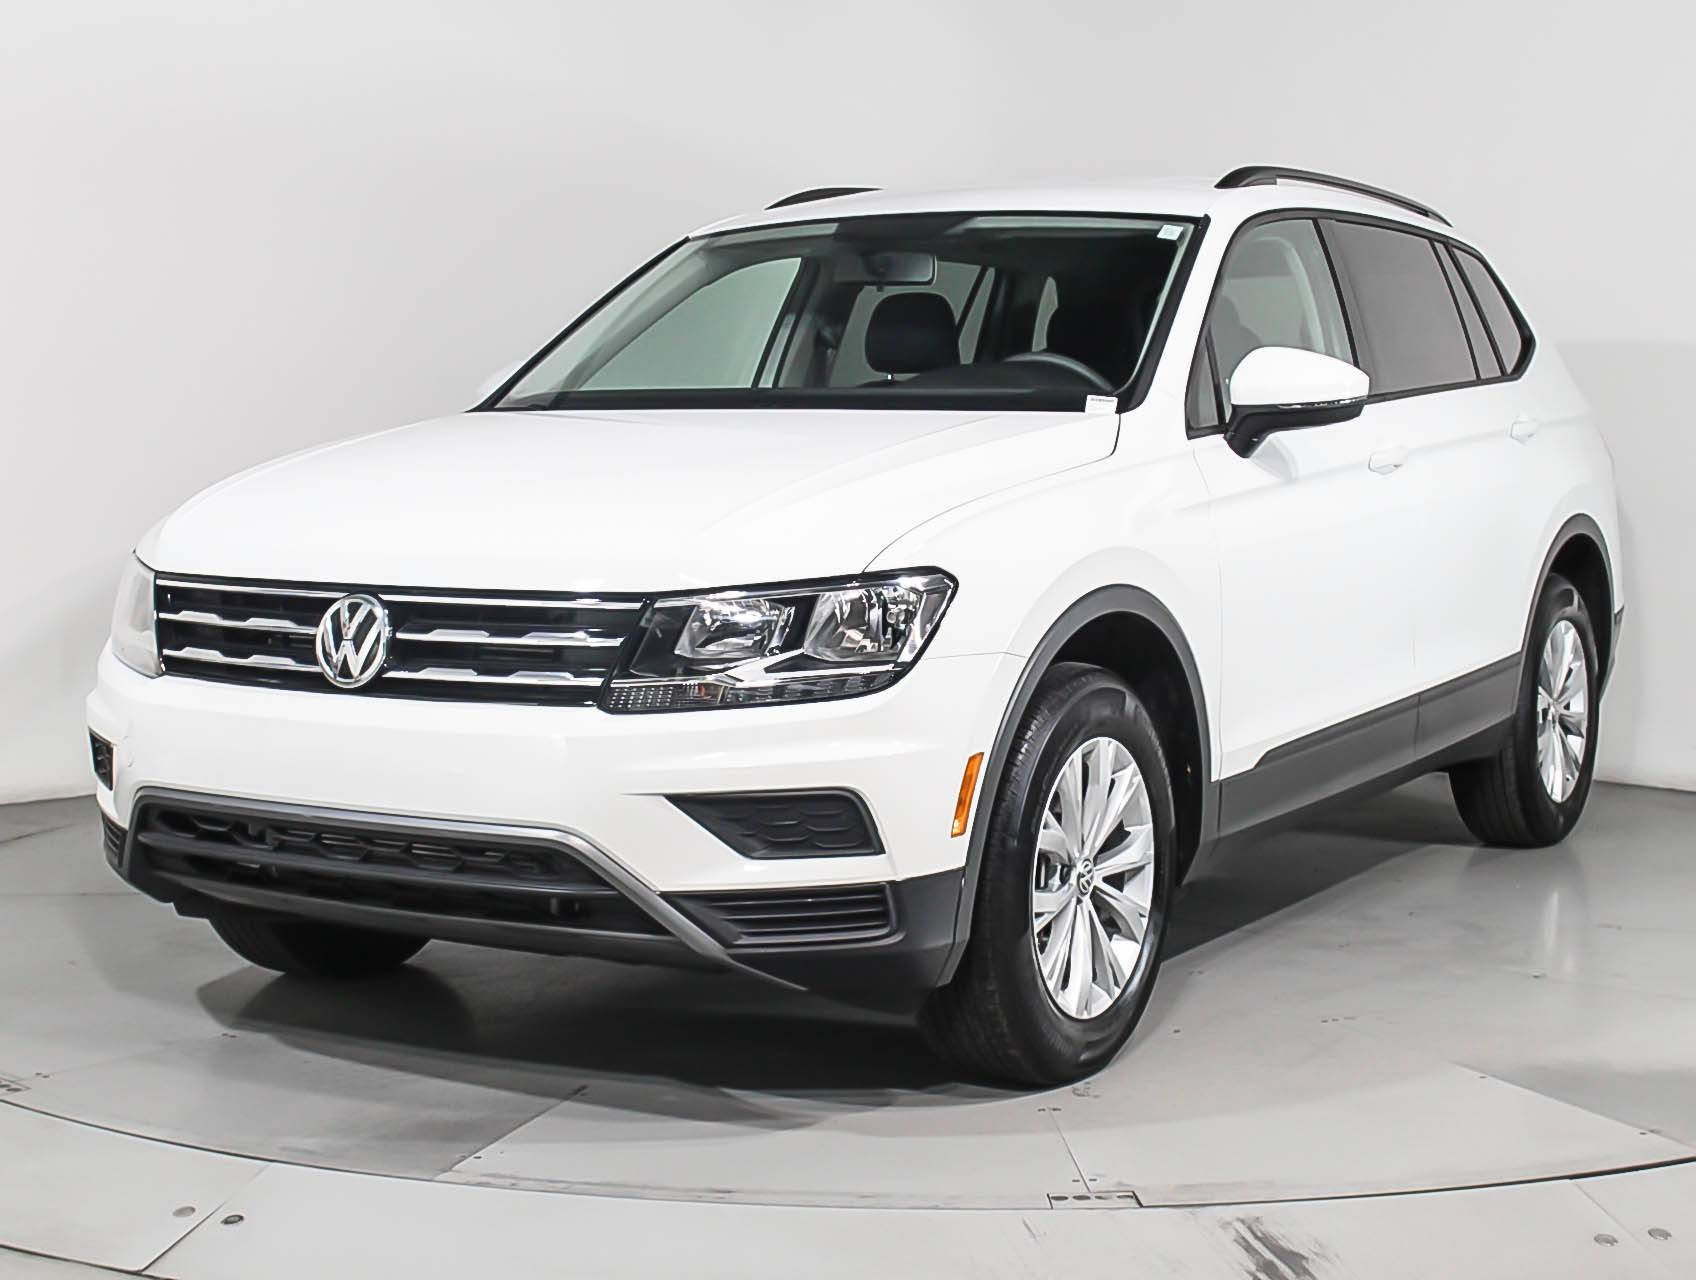 Used 2018 VOLKSWAGEN TIGUAN S SUV for sale in WEST PALM, FL